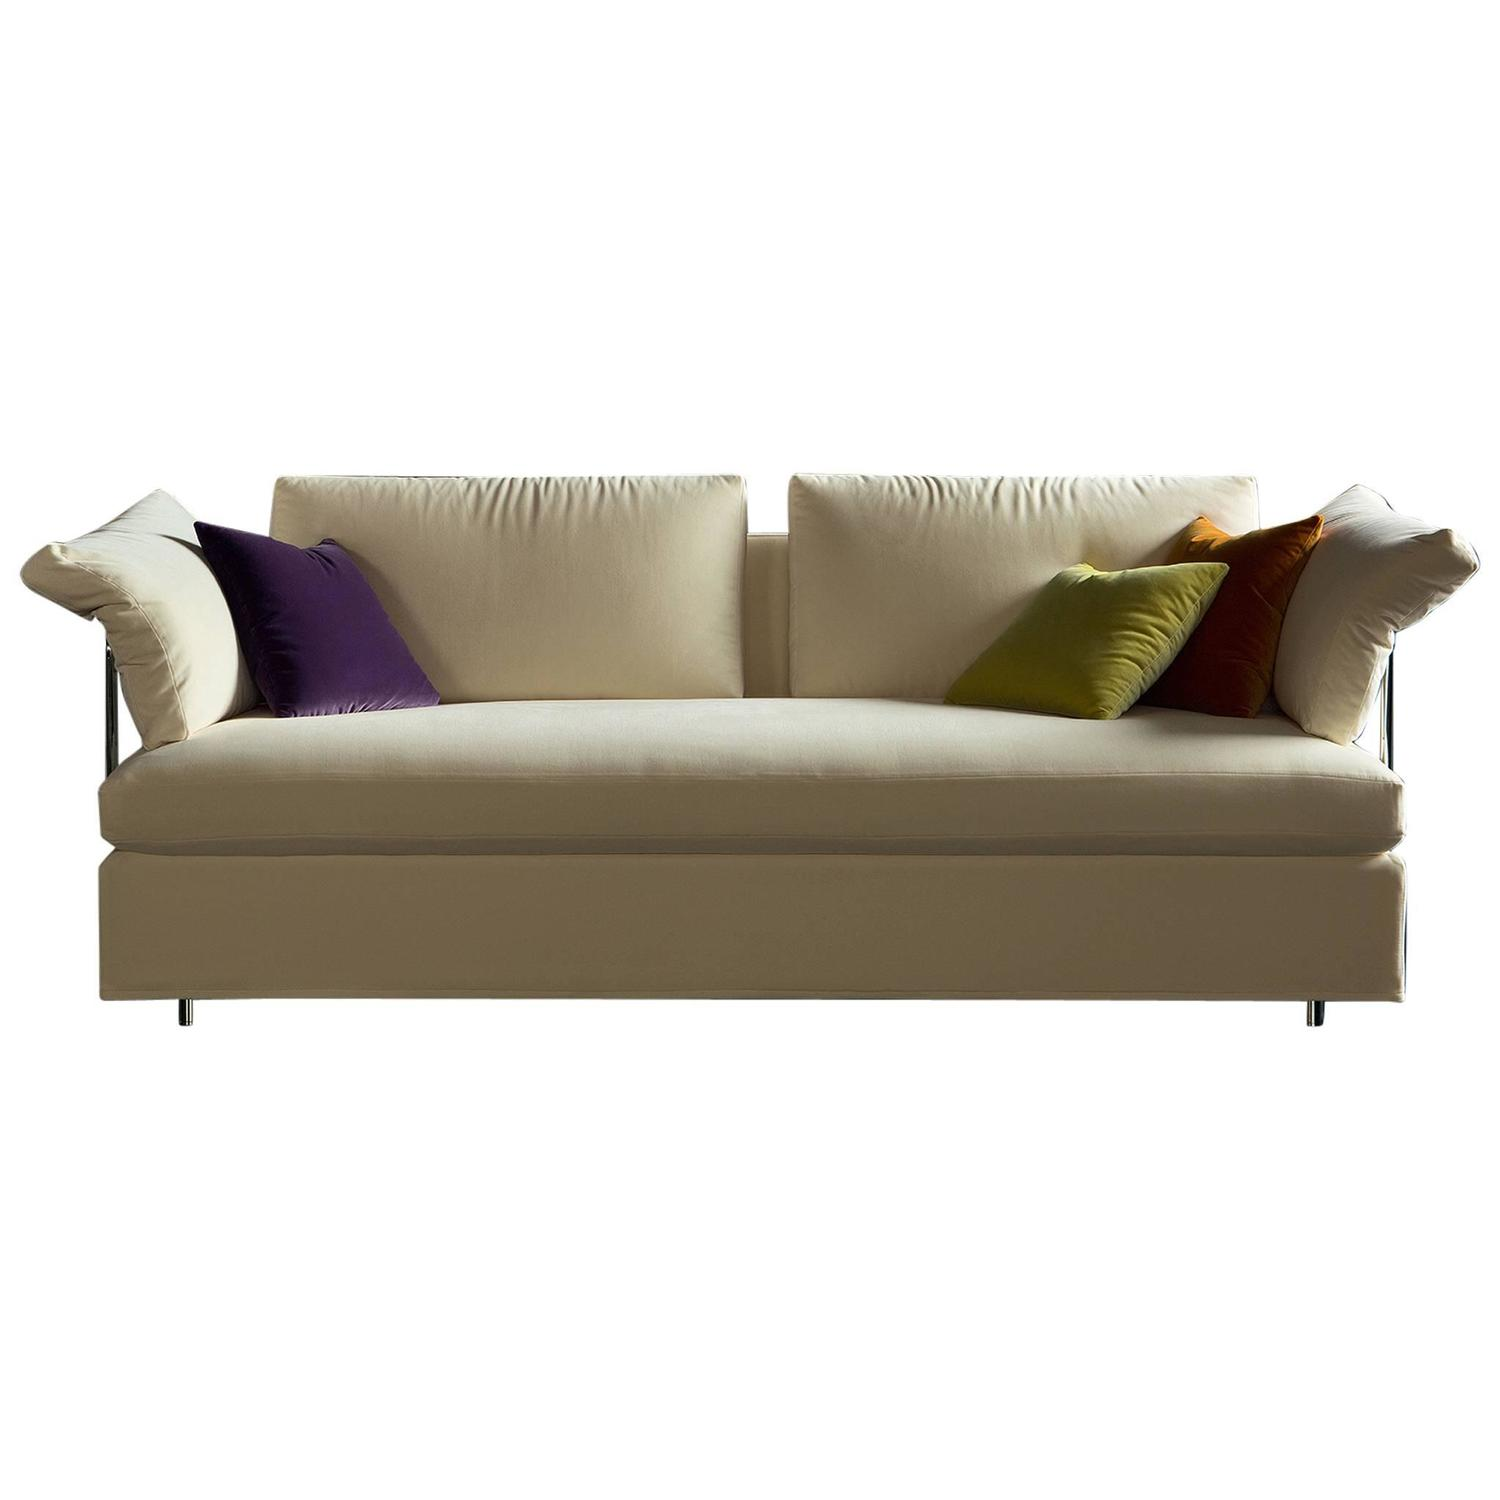 Sofa bed 150cm wide italian modern sofa bed sb46 with arms for 90 cm sofa bed